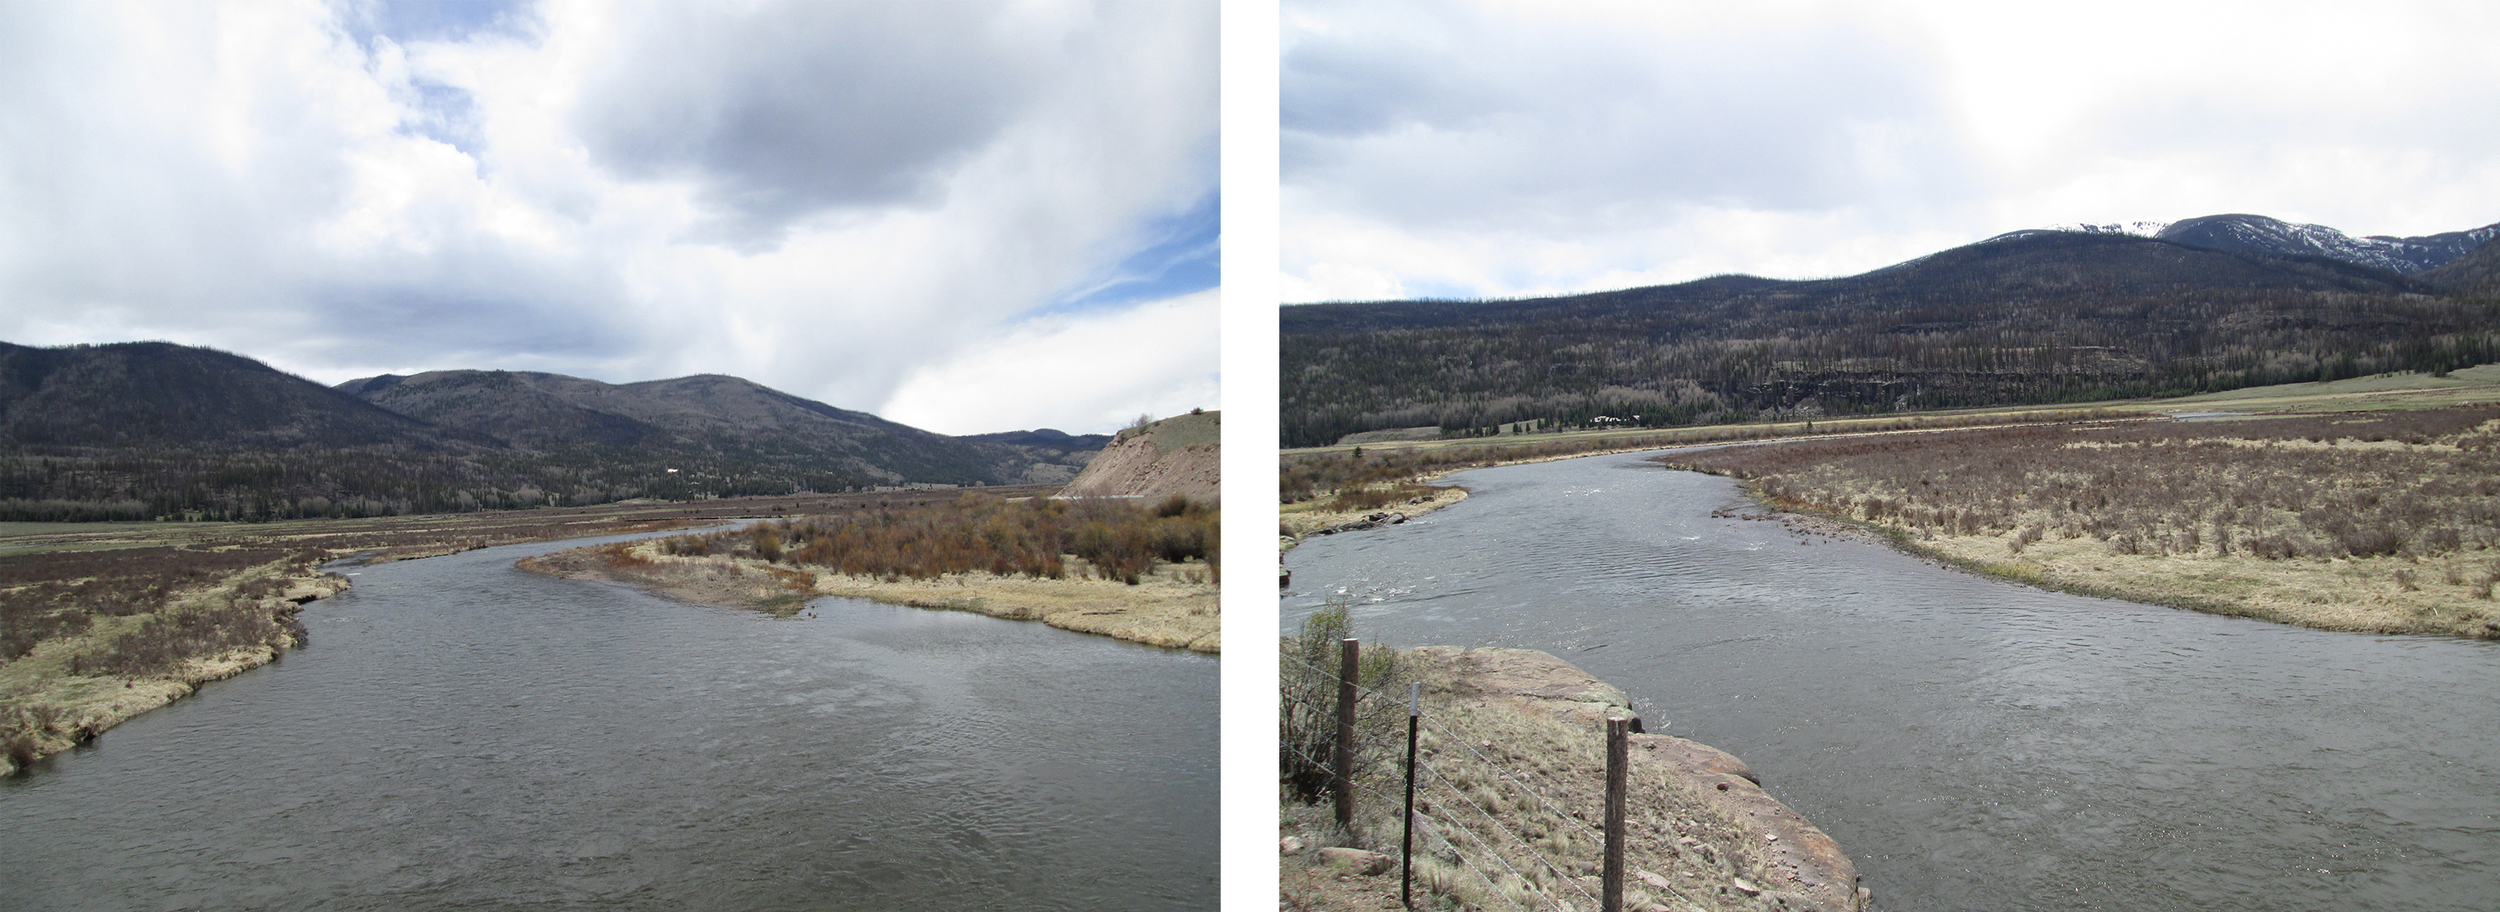 Looking upstream (left) and downstream (right) at near bank-full flows.   Most, but not all gravel bars are covered.